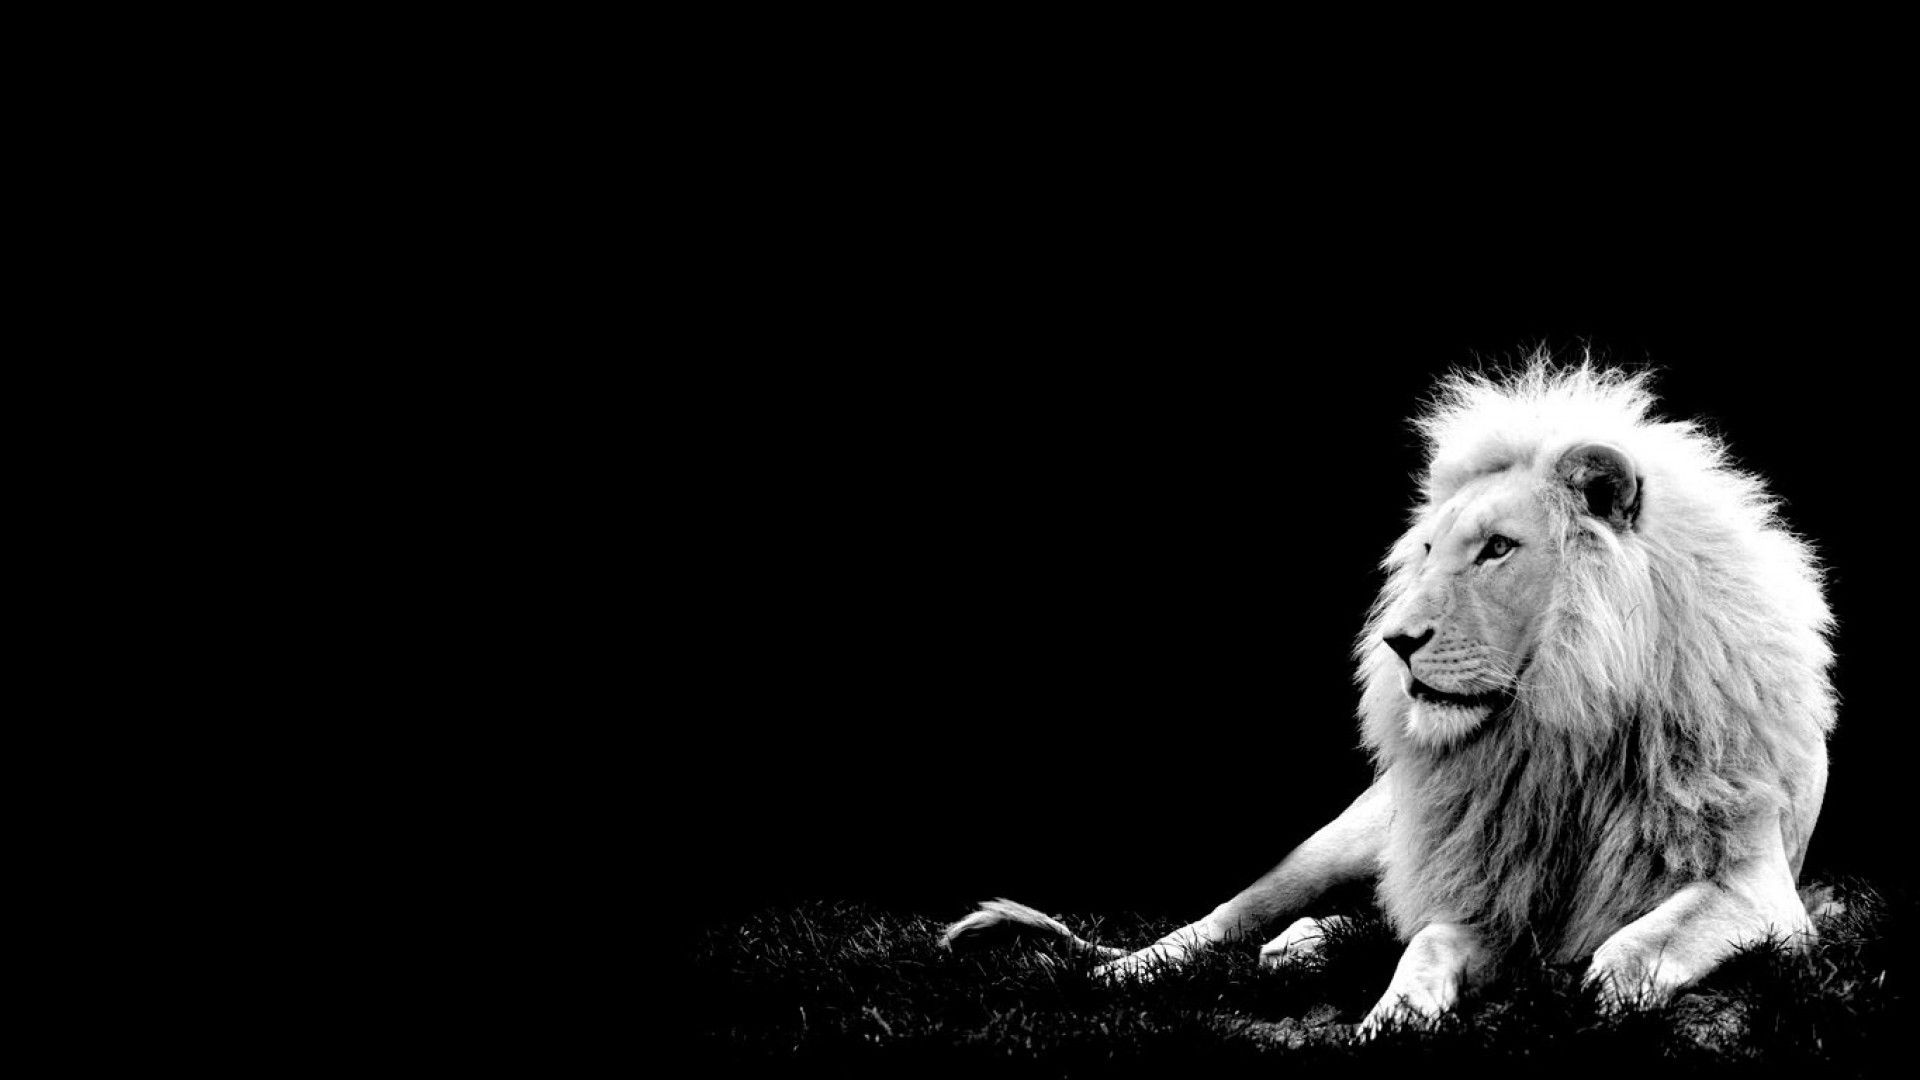 Lion Wallpaper HD Pictures One Backgrounds Image Wallpapers